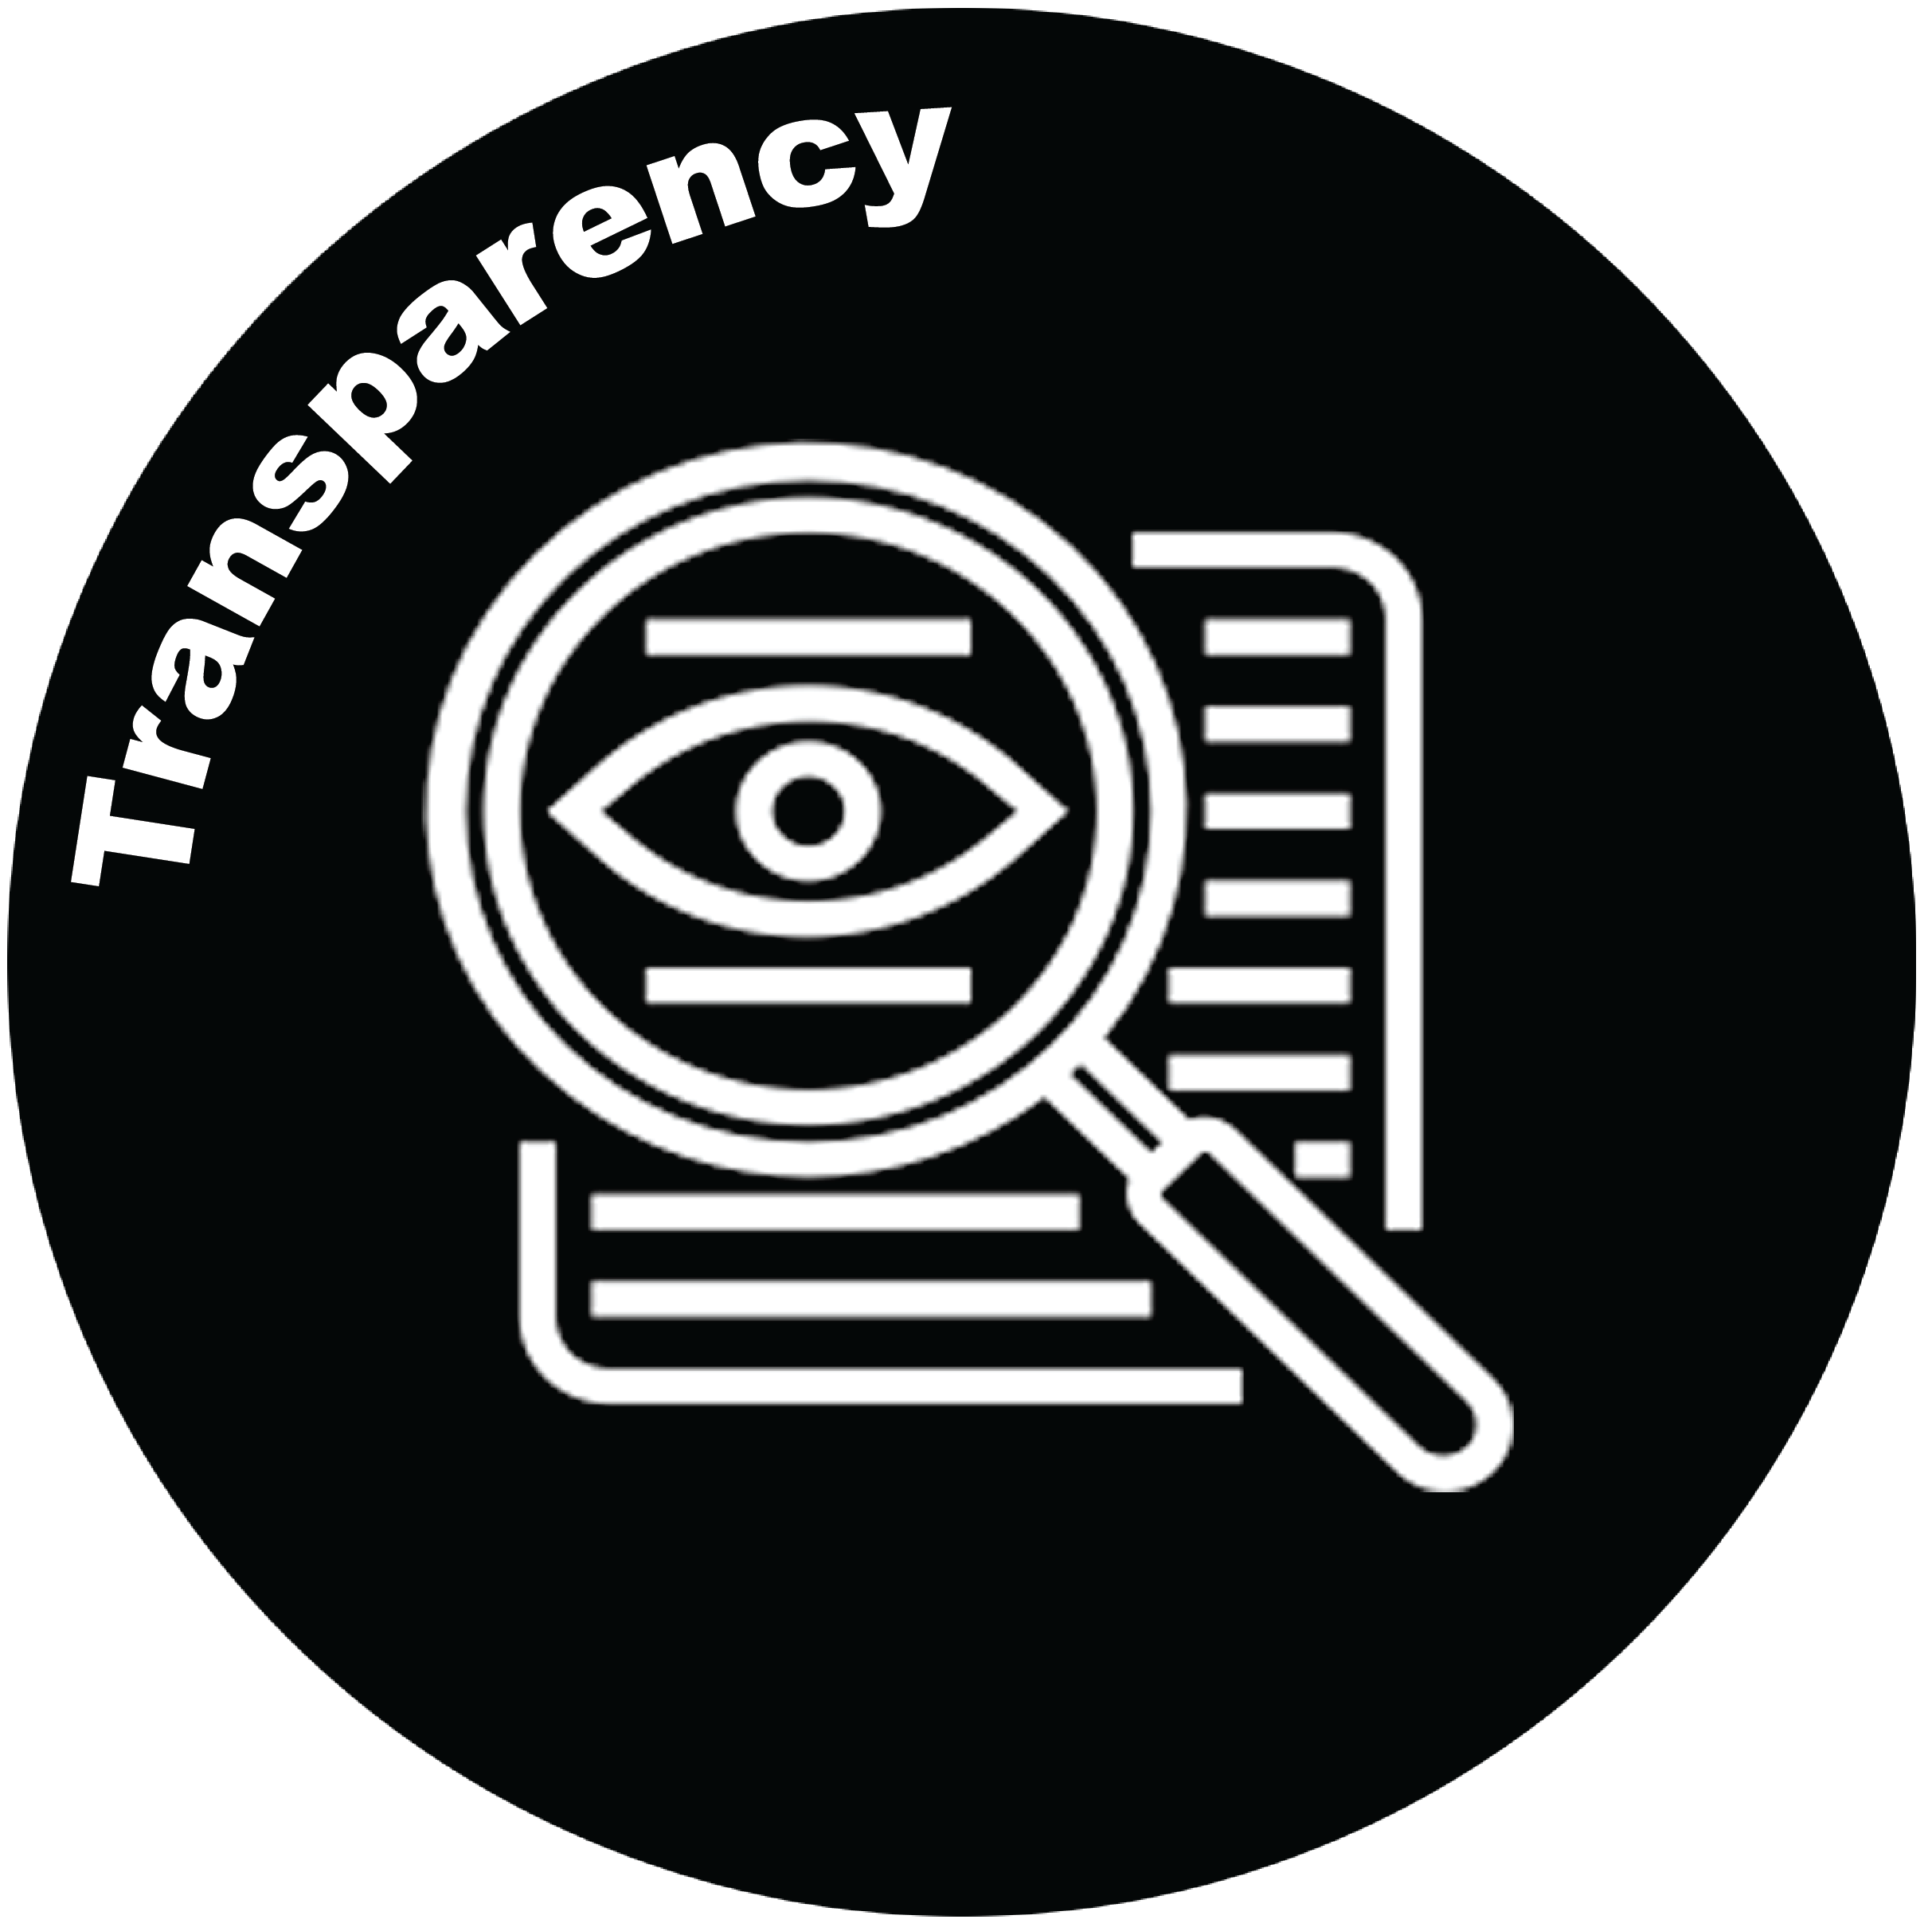 Transparency Title